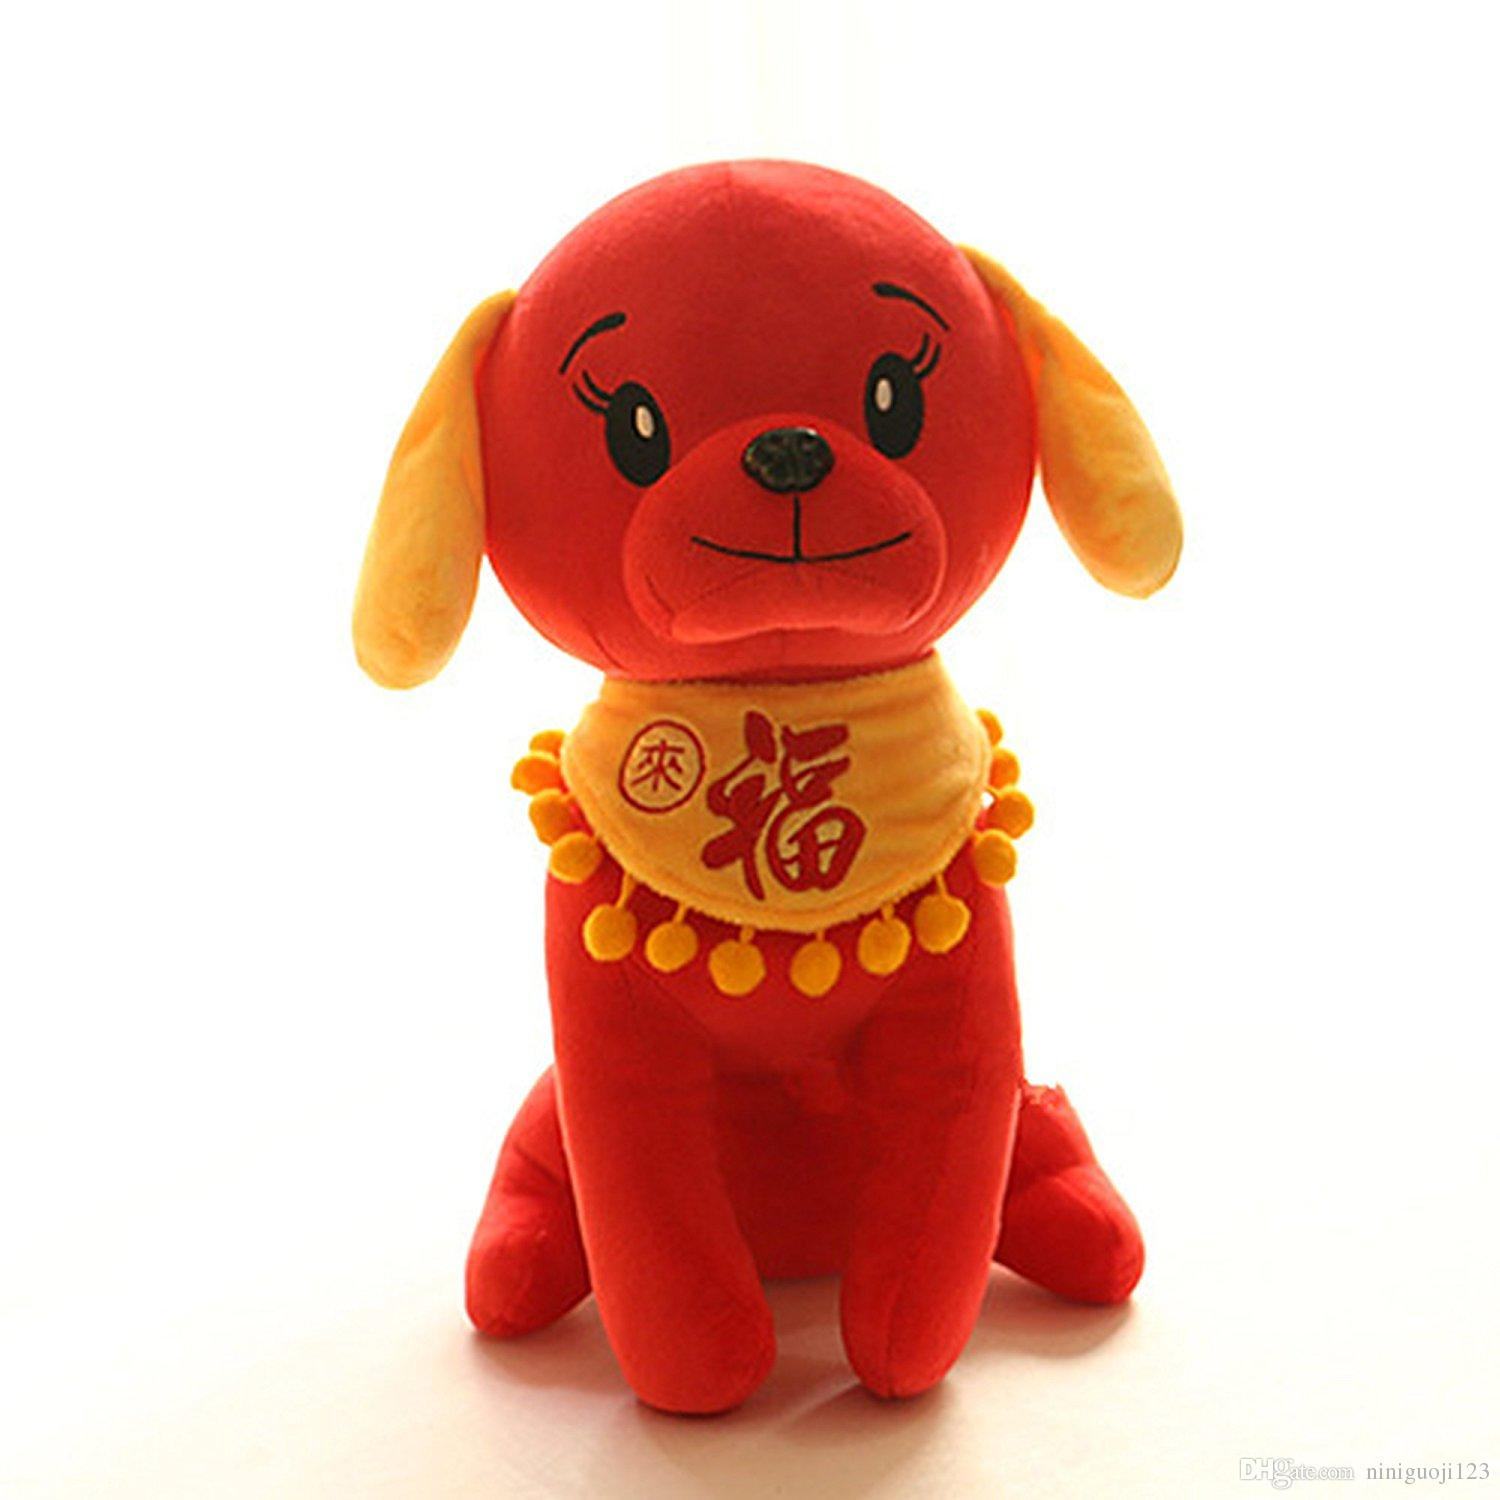 Toys For Chinese New Year : Puppy plush toys chinese new year lunar